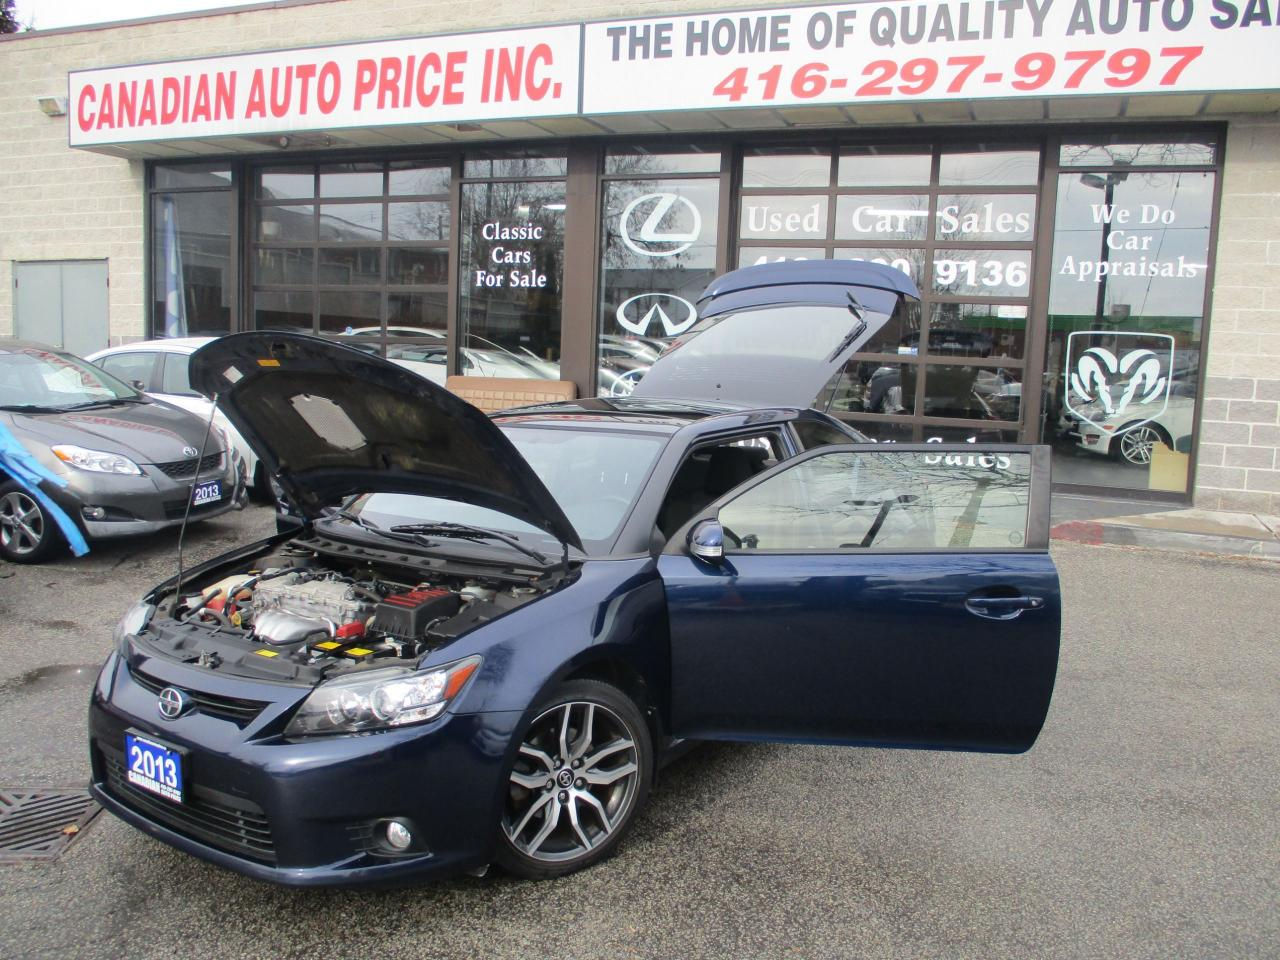 Used 2013 scion tc sun roof spoiler alloys for sale in for Sun motor cars used inventory